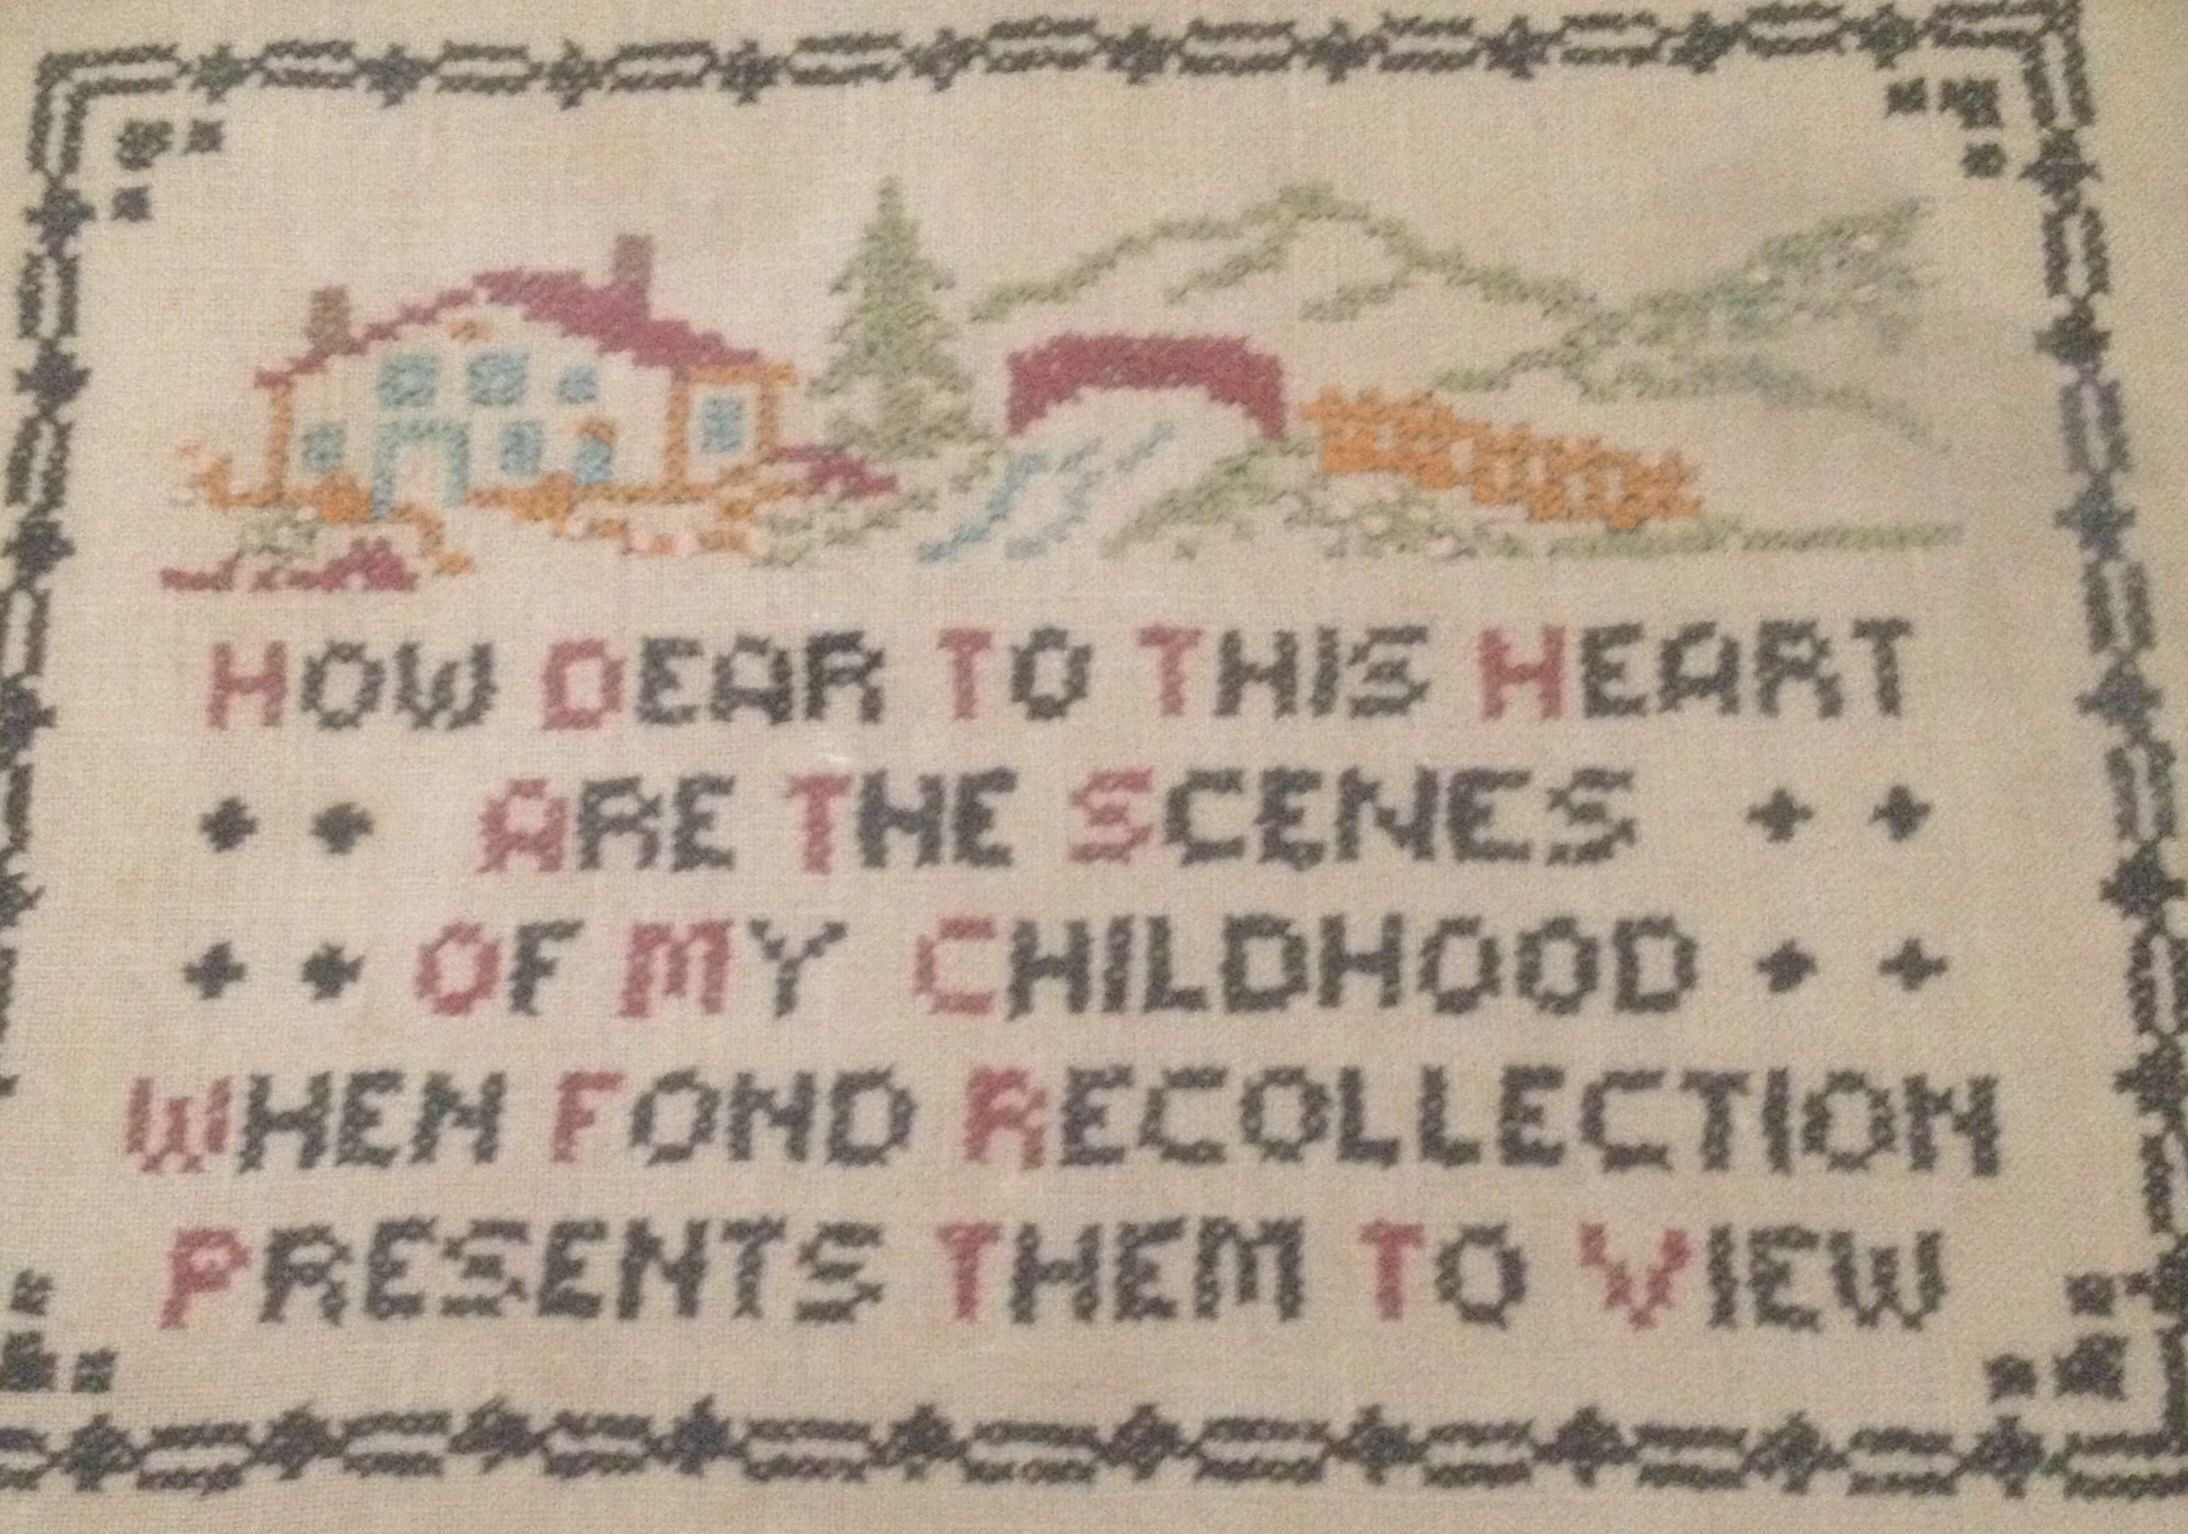 I have wonderful childhood memories. I bought this at a church sale years ago and framed it.